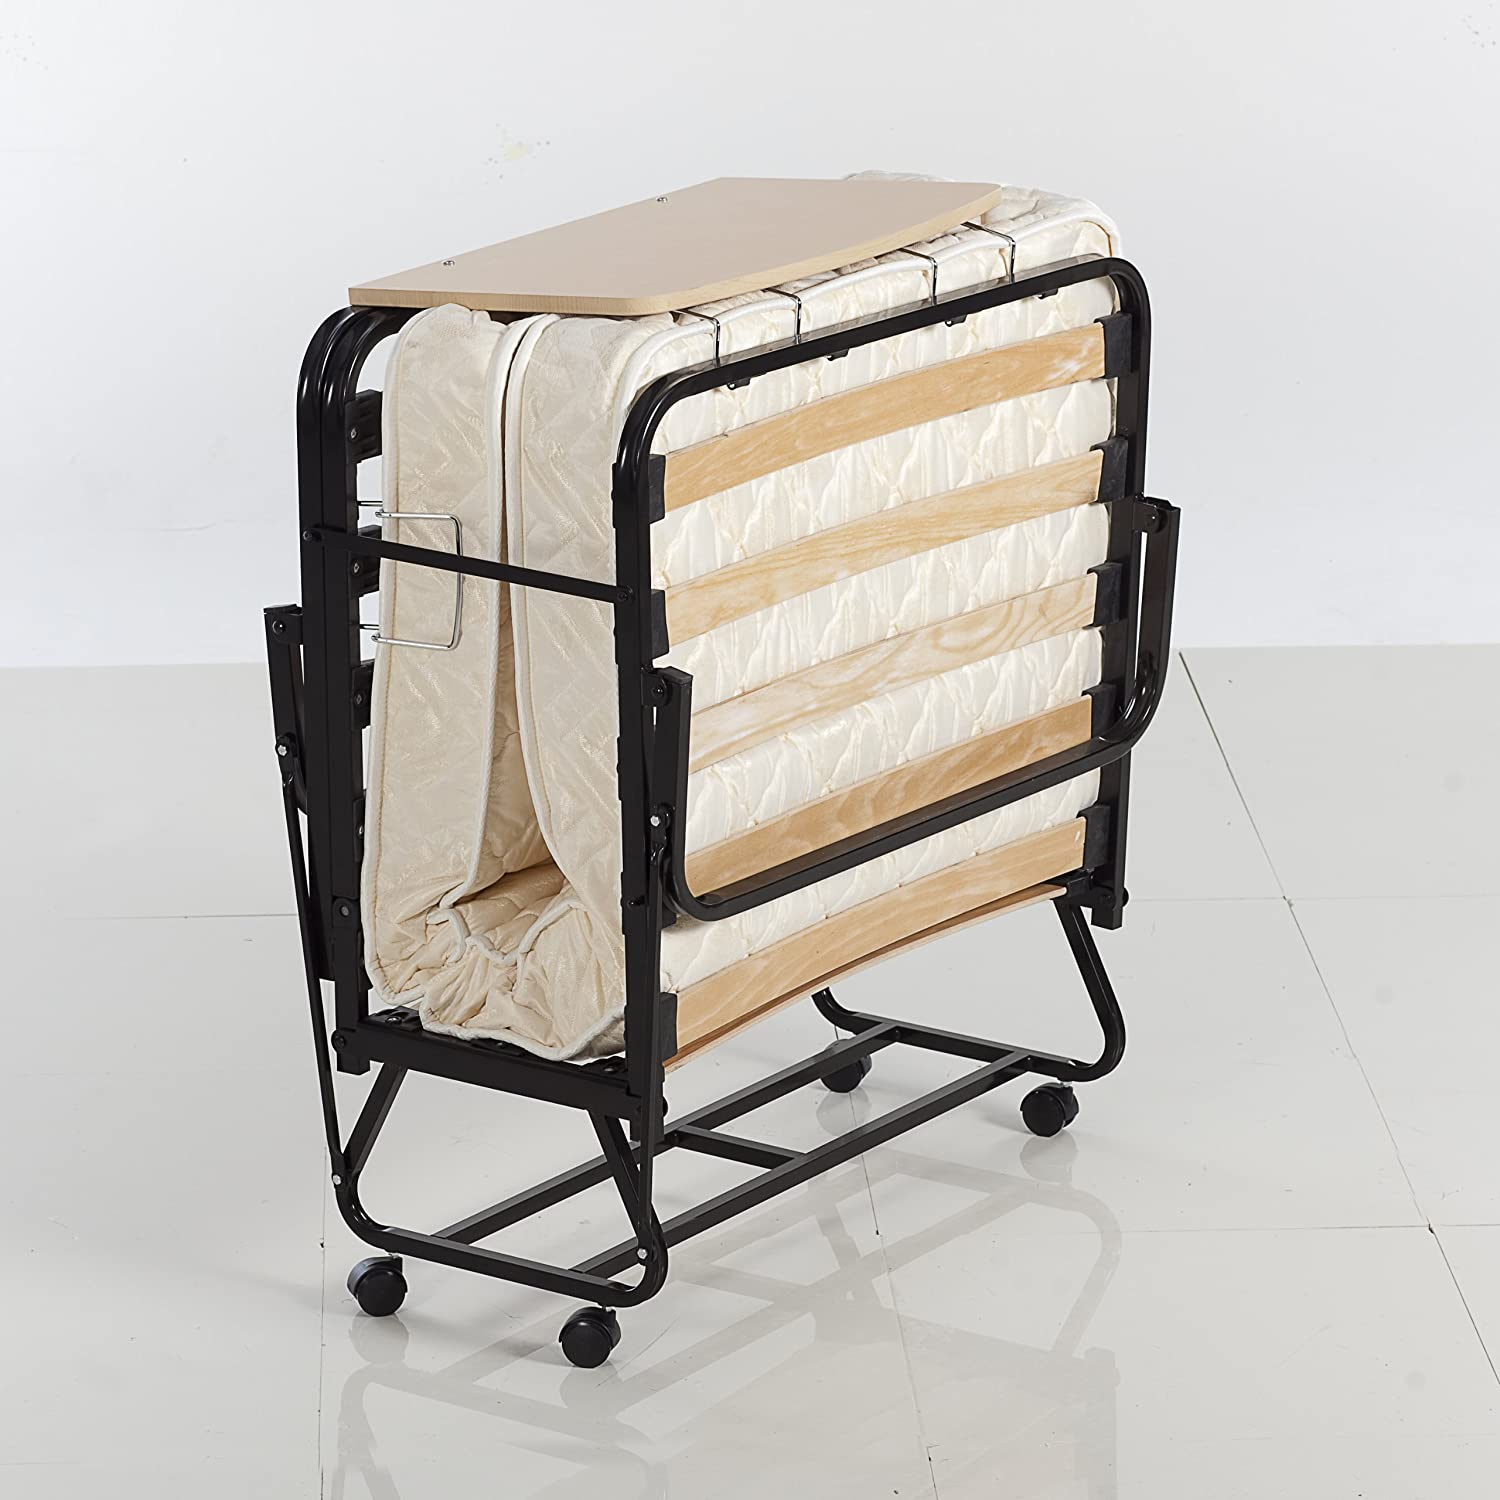 comfortable wall one home quilt type floor upon brown take fold for job into large finish best you when yellow design multifunction beneath where bed can s up between turns luxurious desk your it also with storage though wooden white of impression the sweet towards